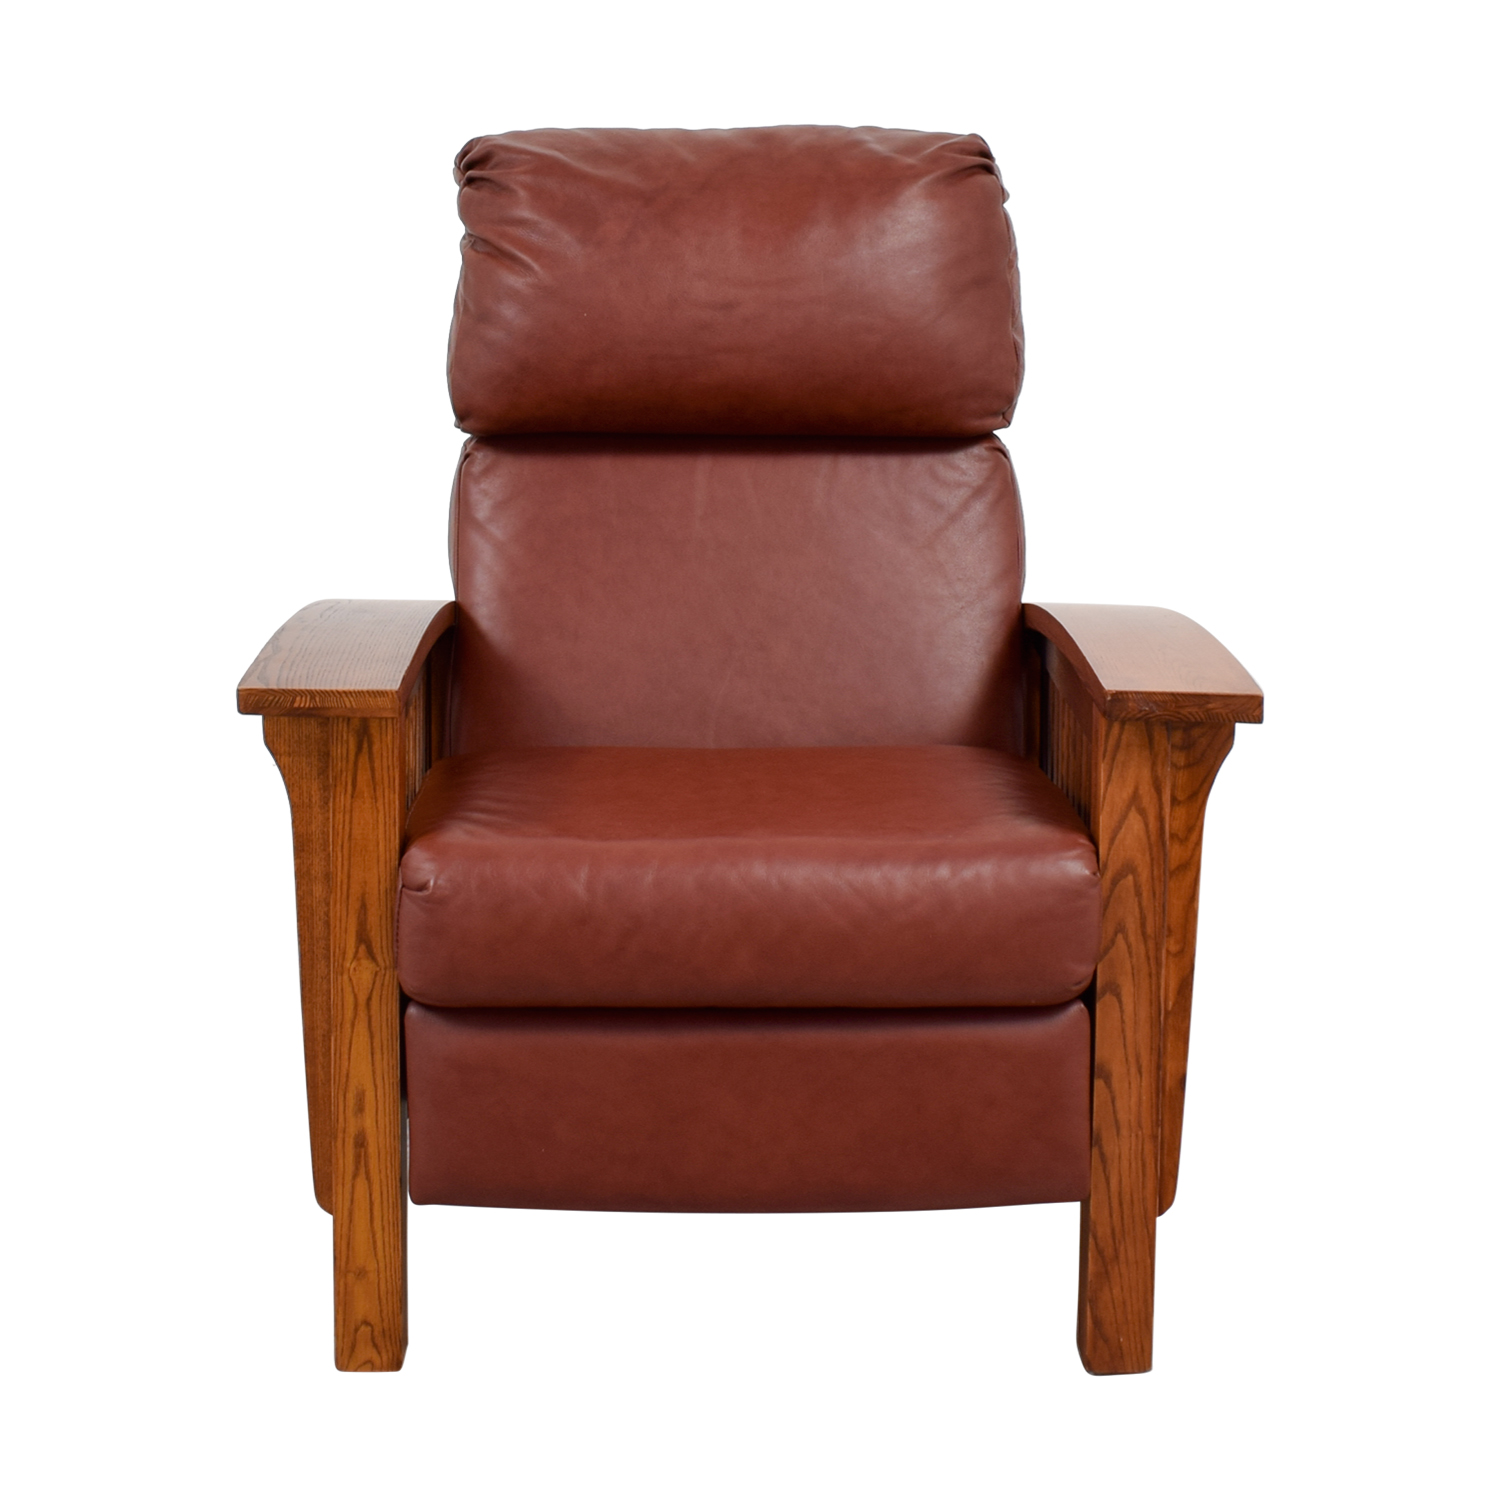 Macy's Macy's Brown Leather and Wood Recliner for sale